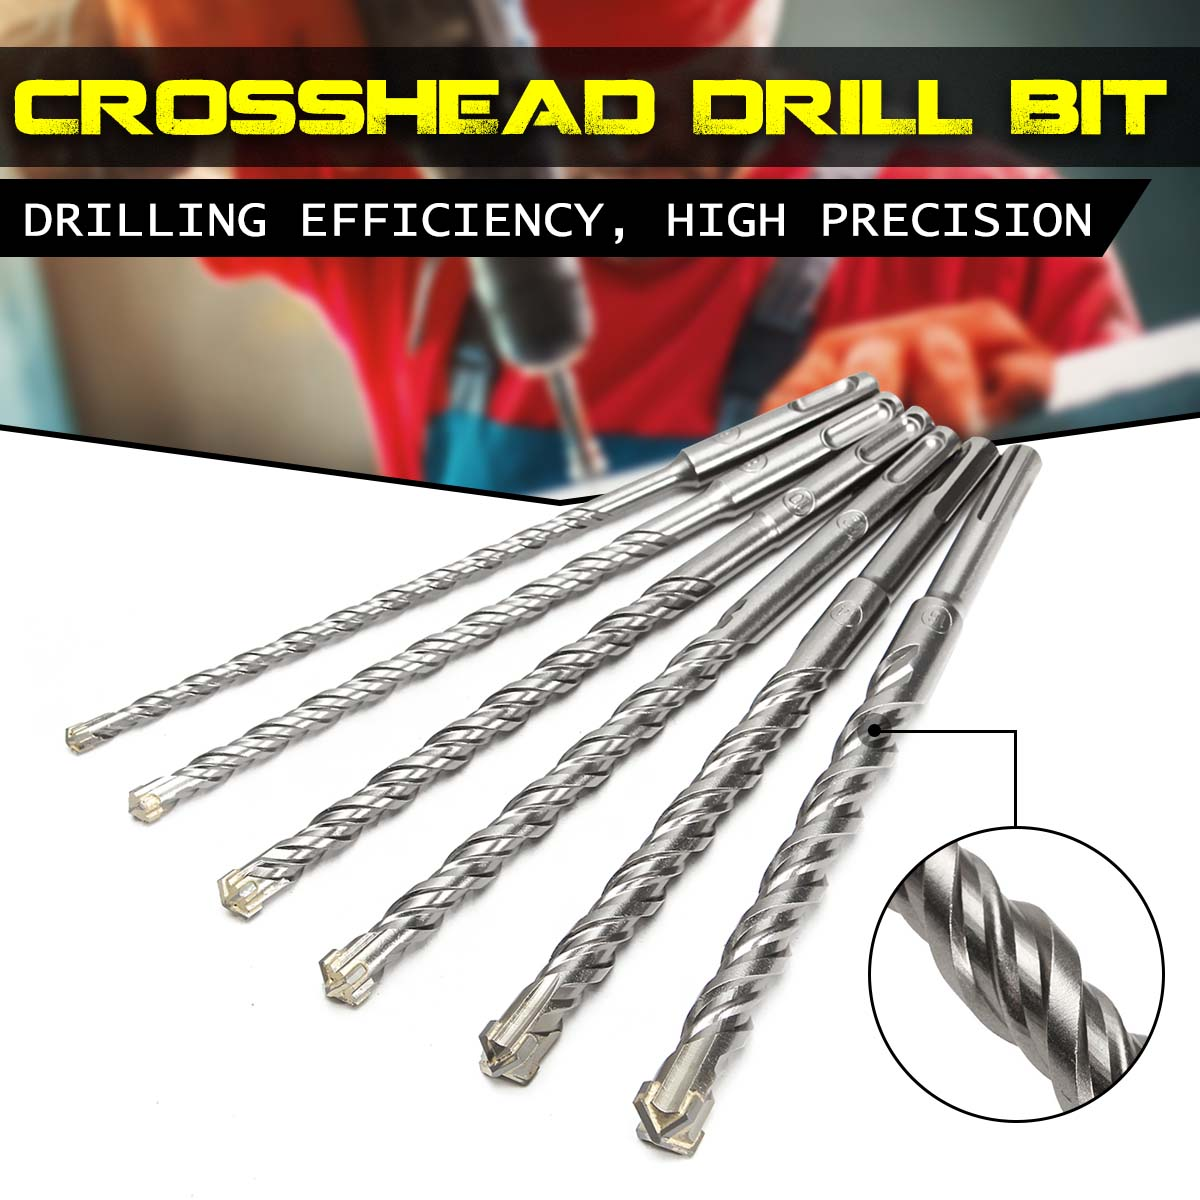 Concrete Tungsten Carbide Tip 210mm SDS Plus Crosshead Drill Bits Carbide Twin Spiral Drilling Efficiency High Precision Durable